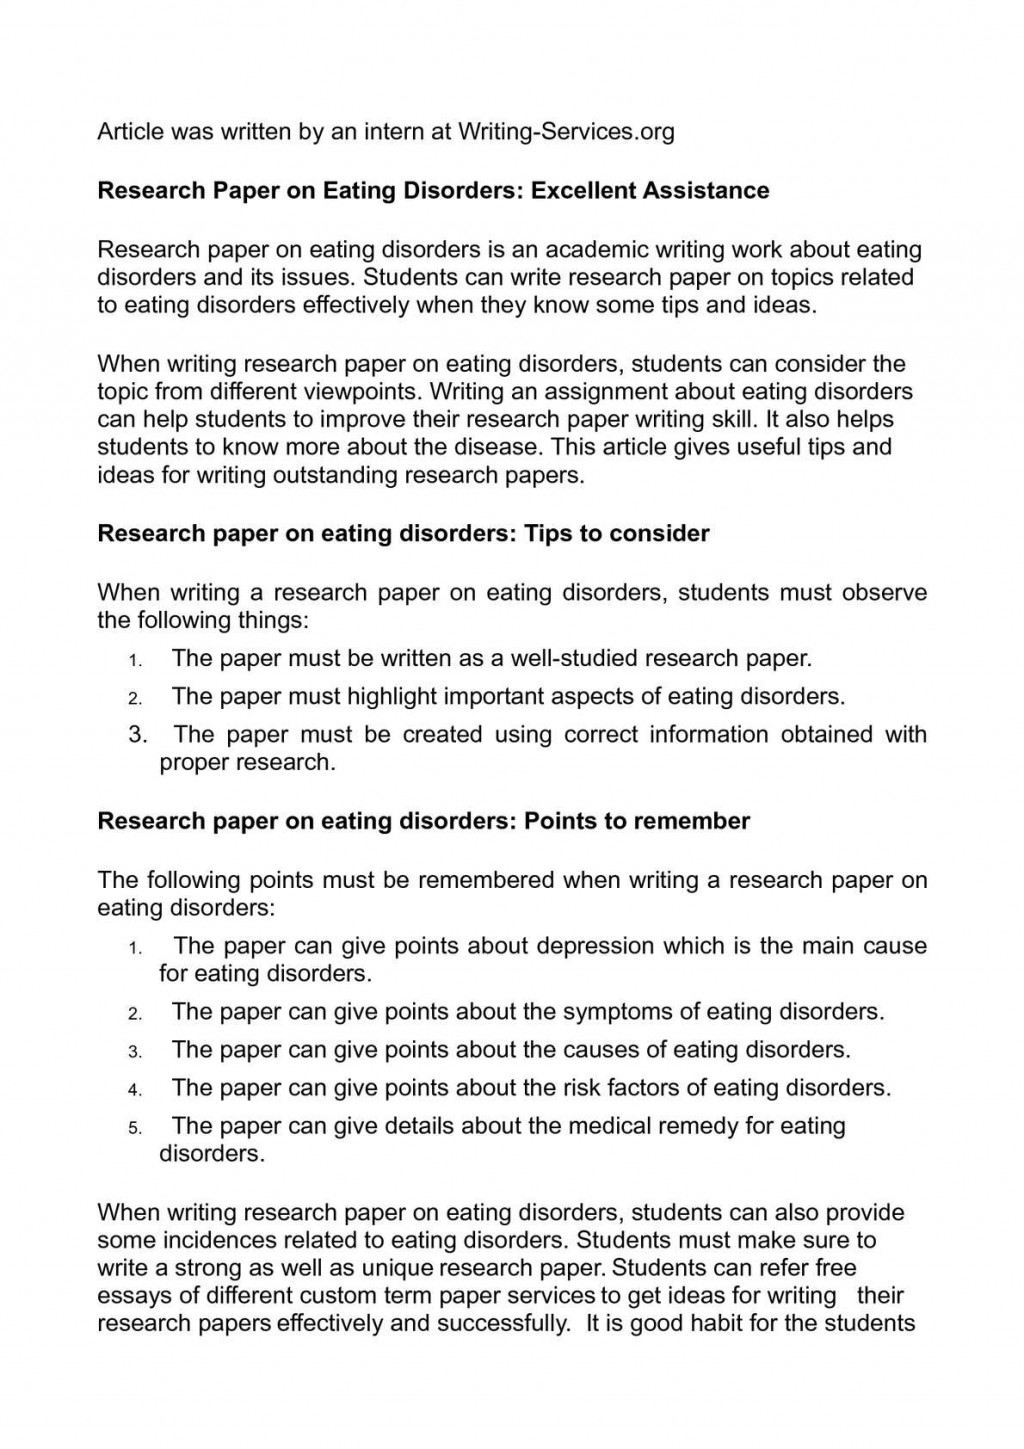 002 Examples Of Researchs On Eating Disorders P1 Frightening Research Papers Large